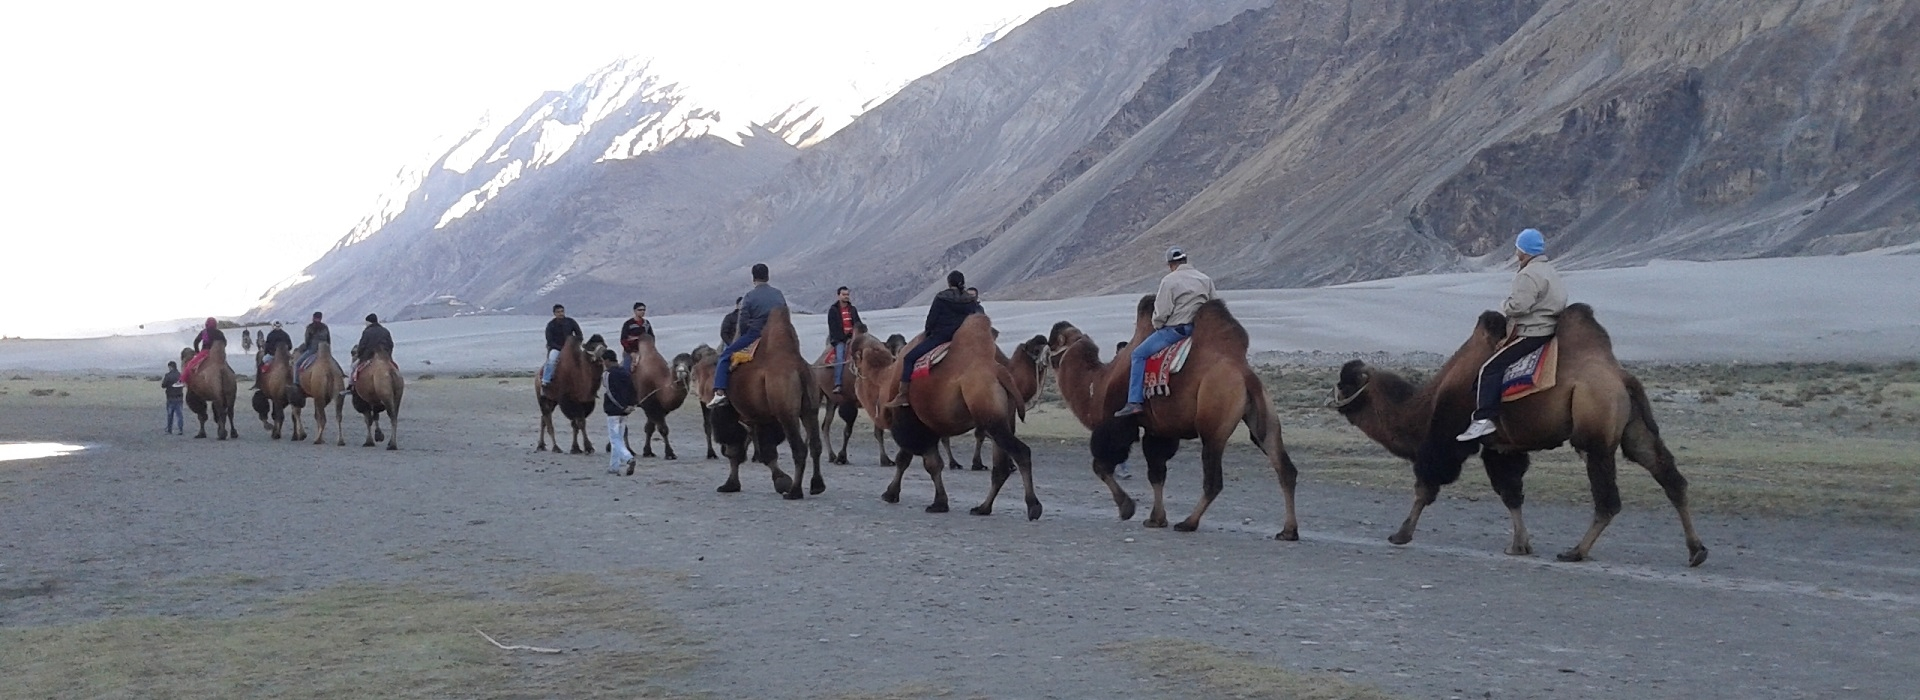 Shyok, Nubra Valley & The Silk Route